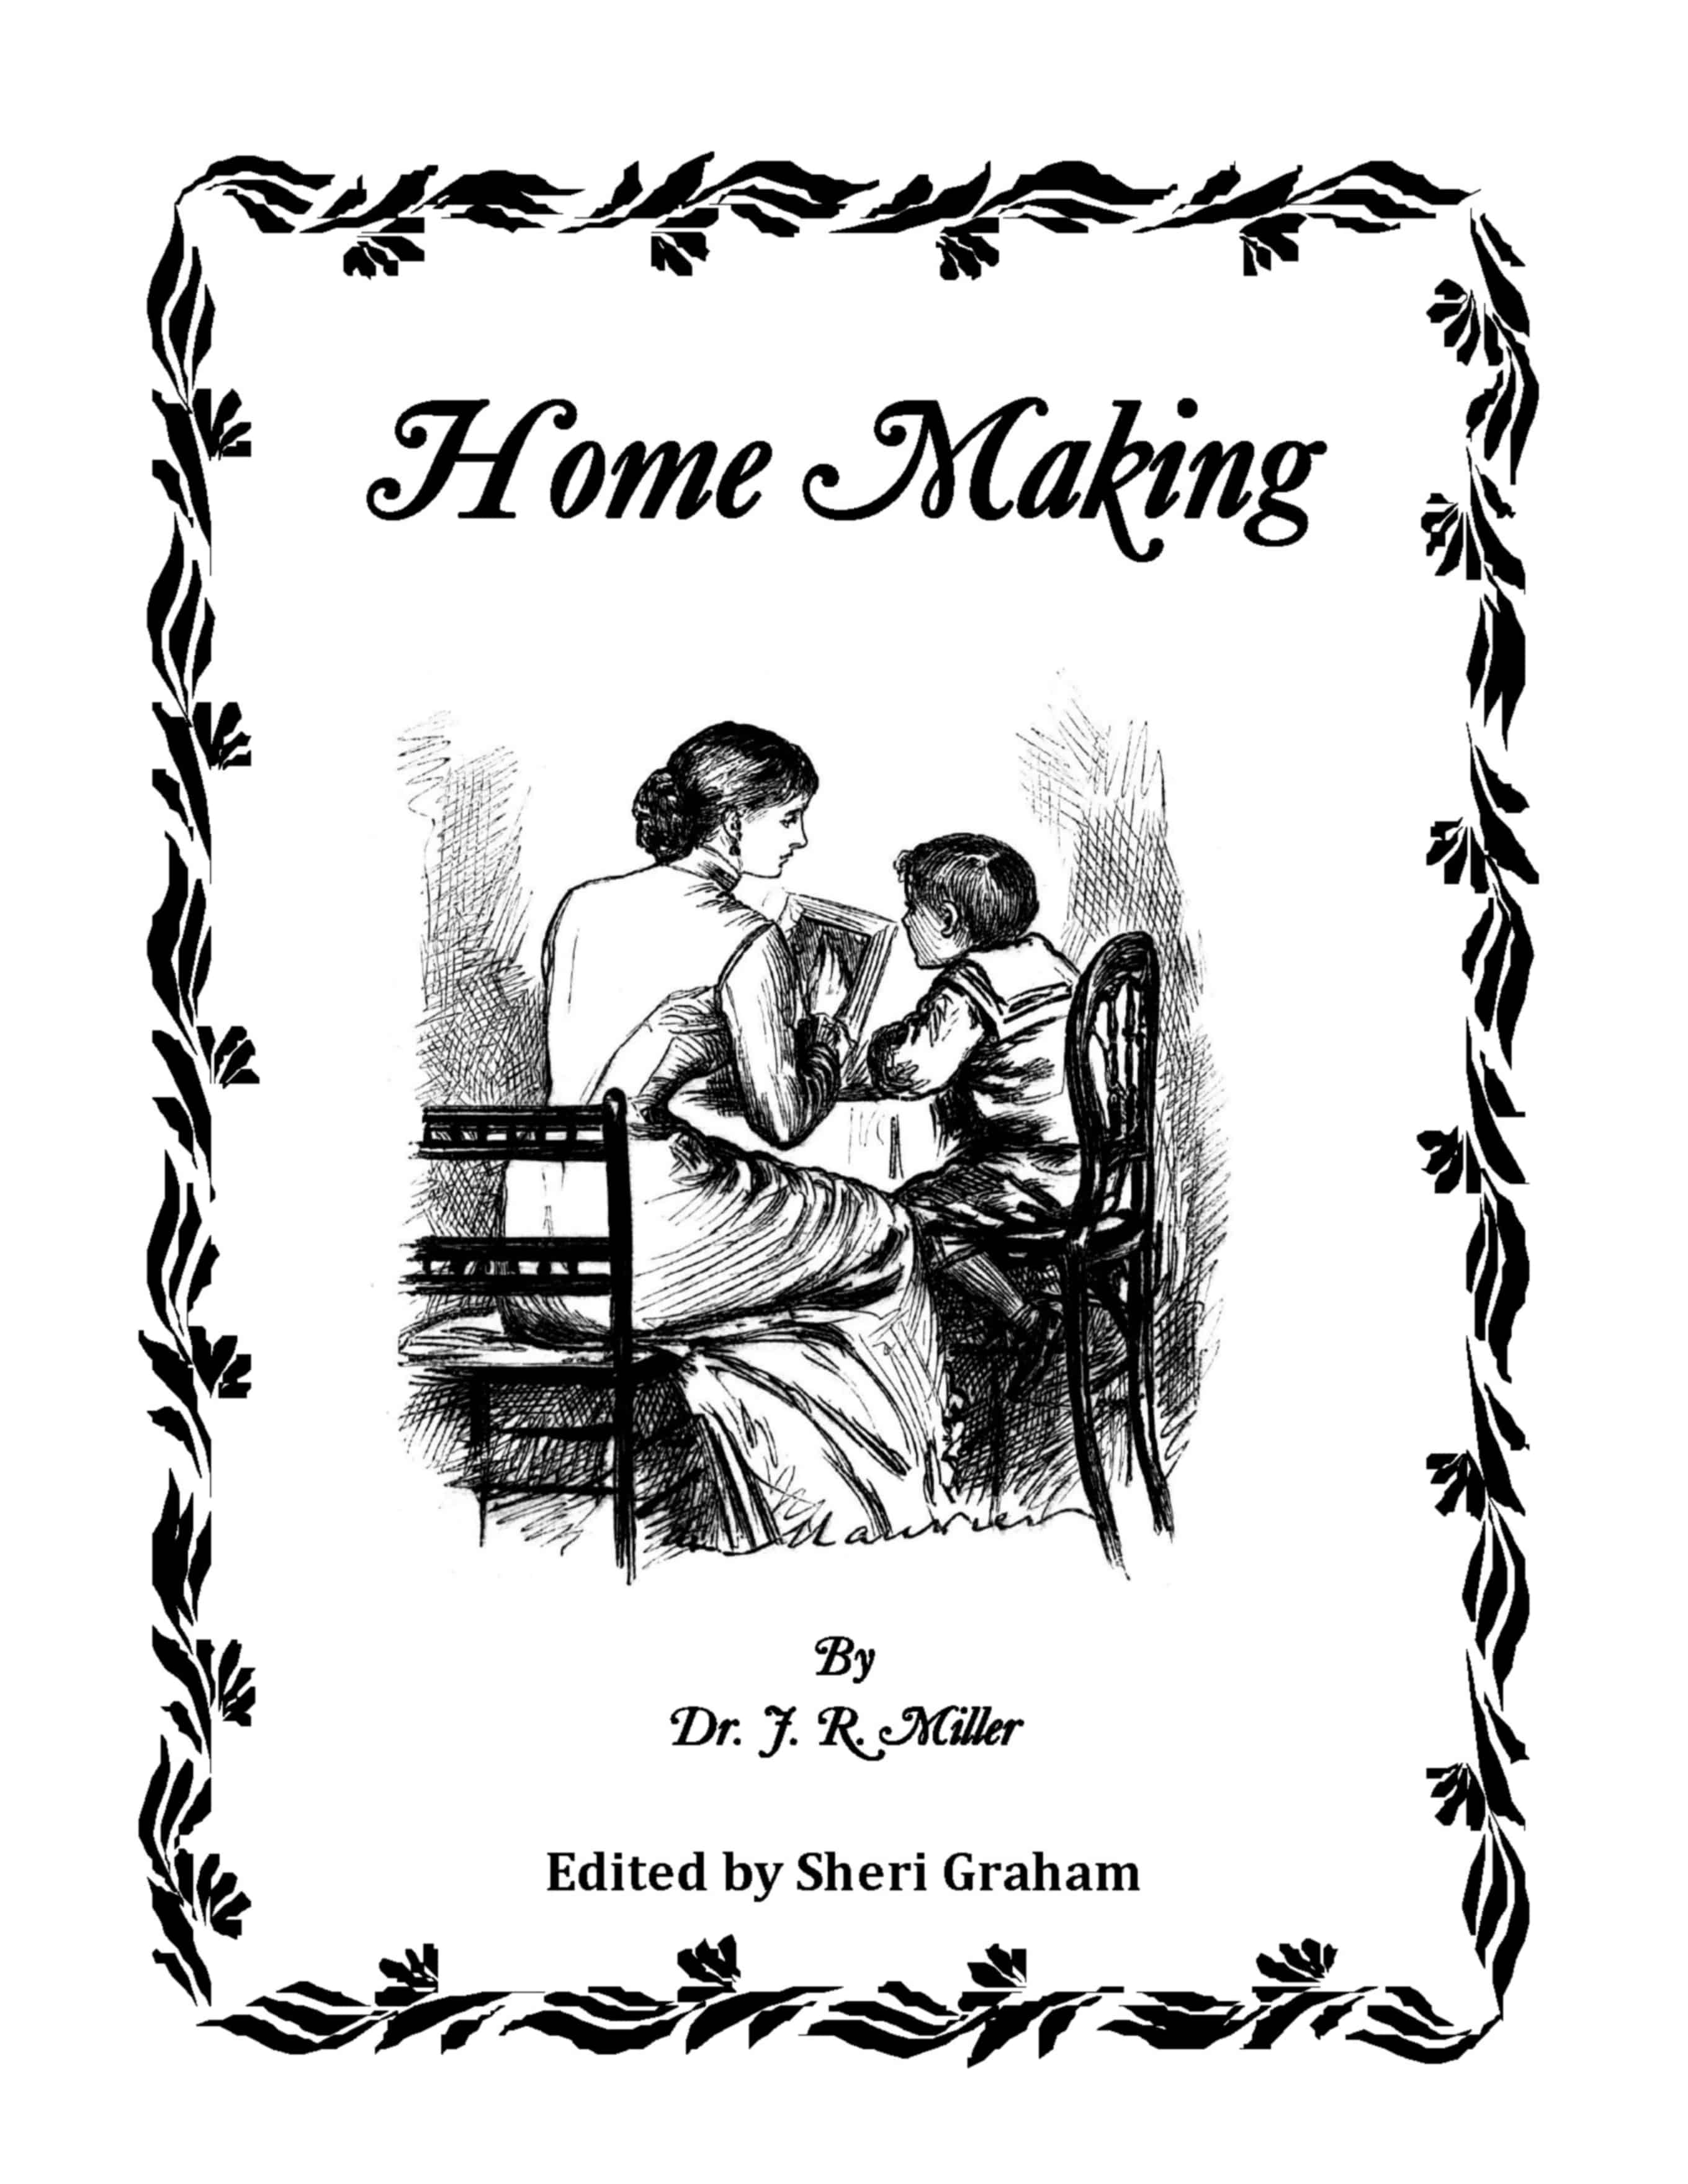 Home Making Now Available in Softcover!